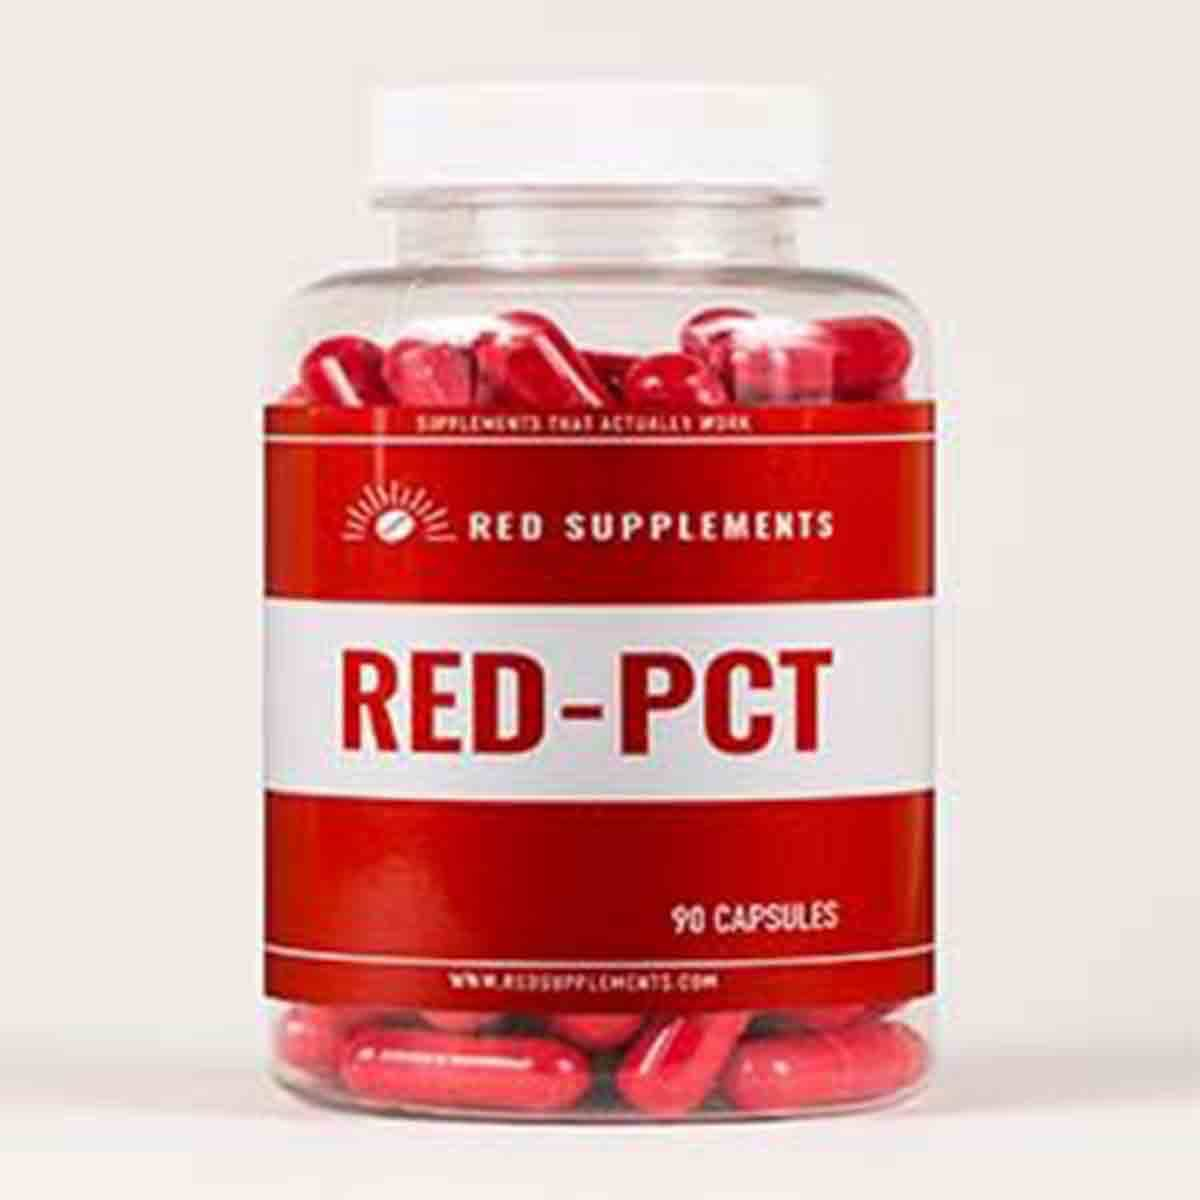 Androsta 3 5 Diene 7 17 Dione Side Effects muscle watchdog | red supplements red pct review, buy, scam?